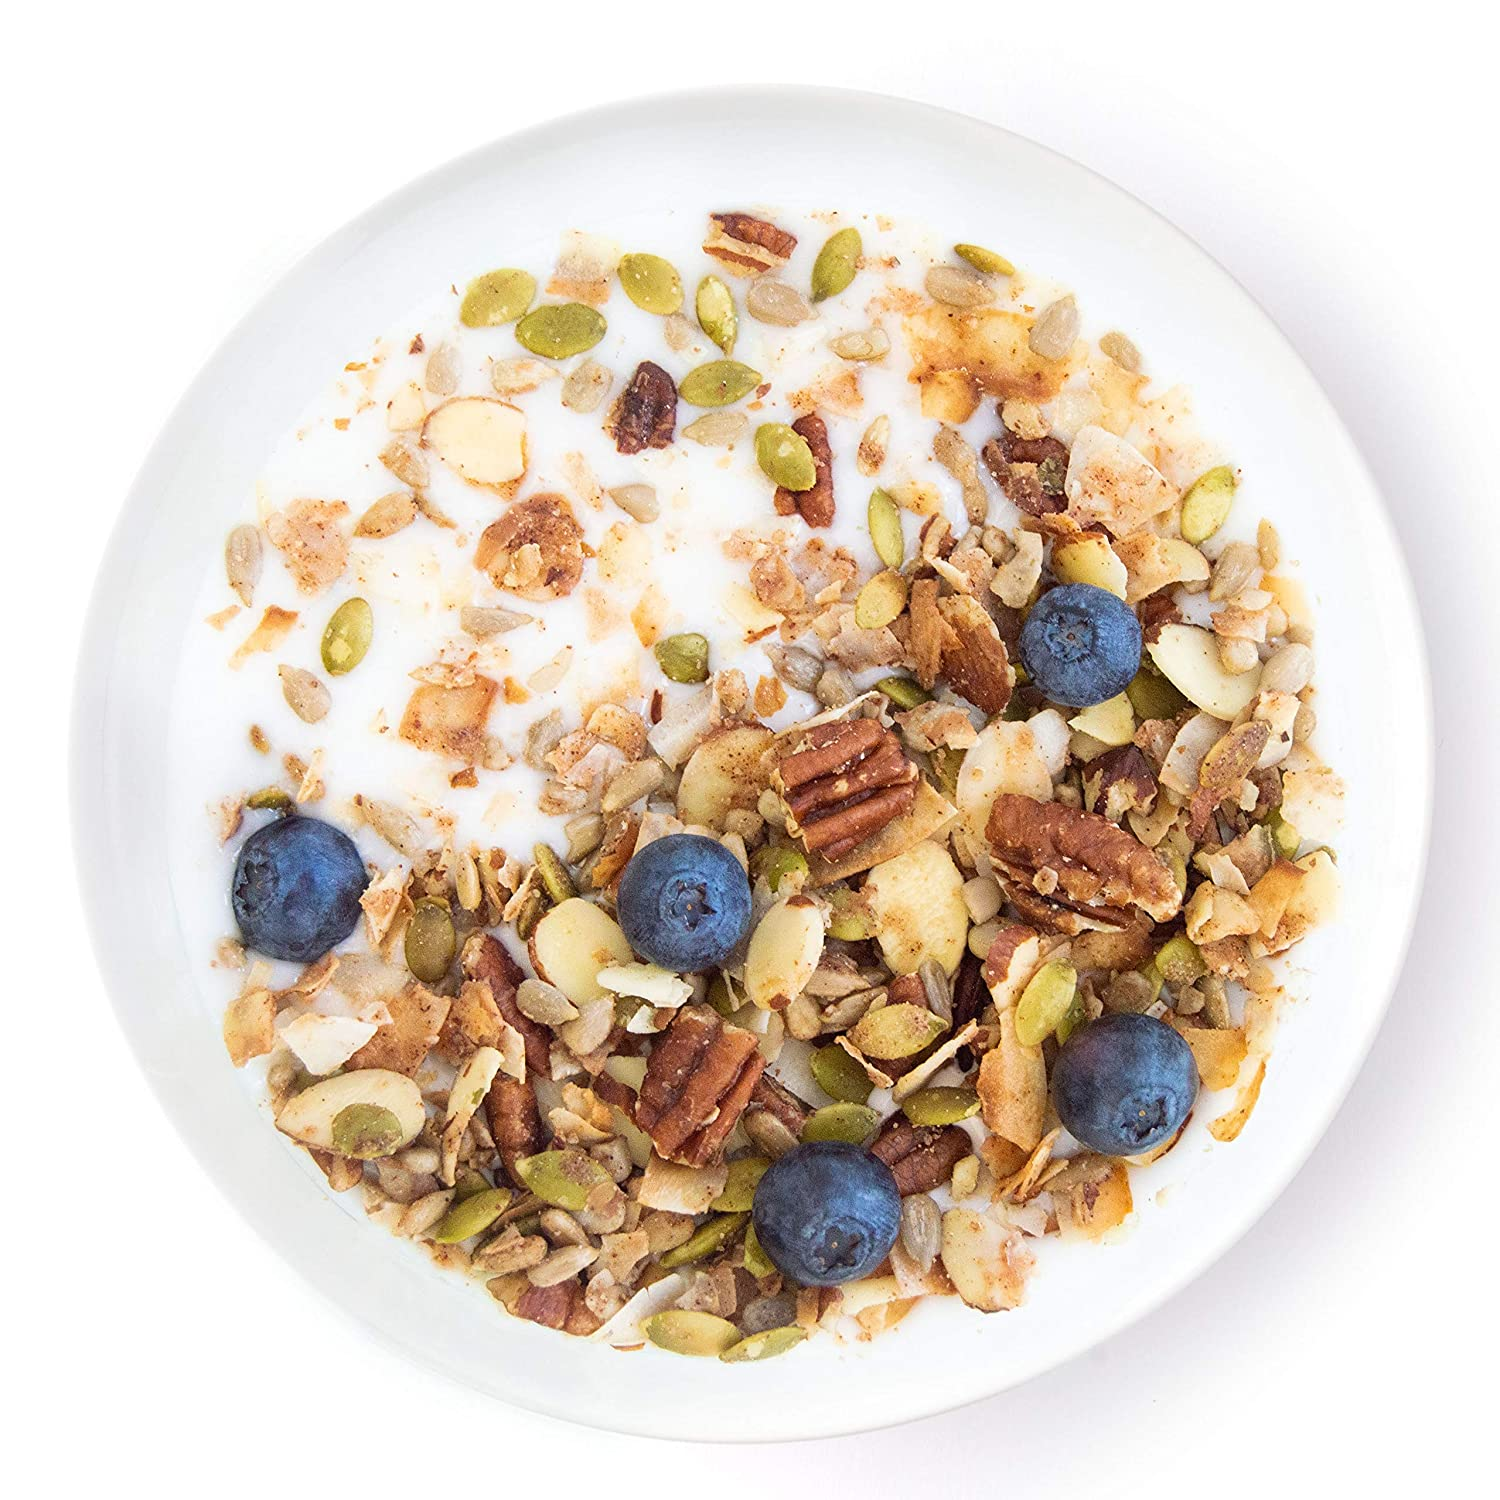 Keto Blueberry Nut Granola Healthy Breakfast